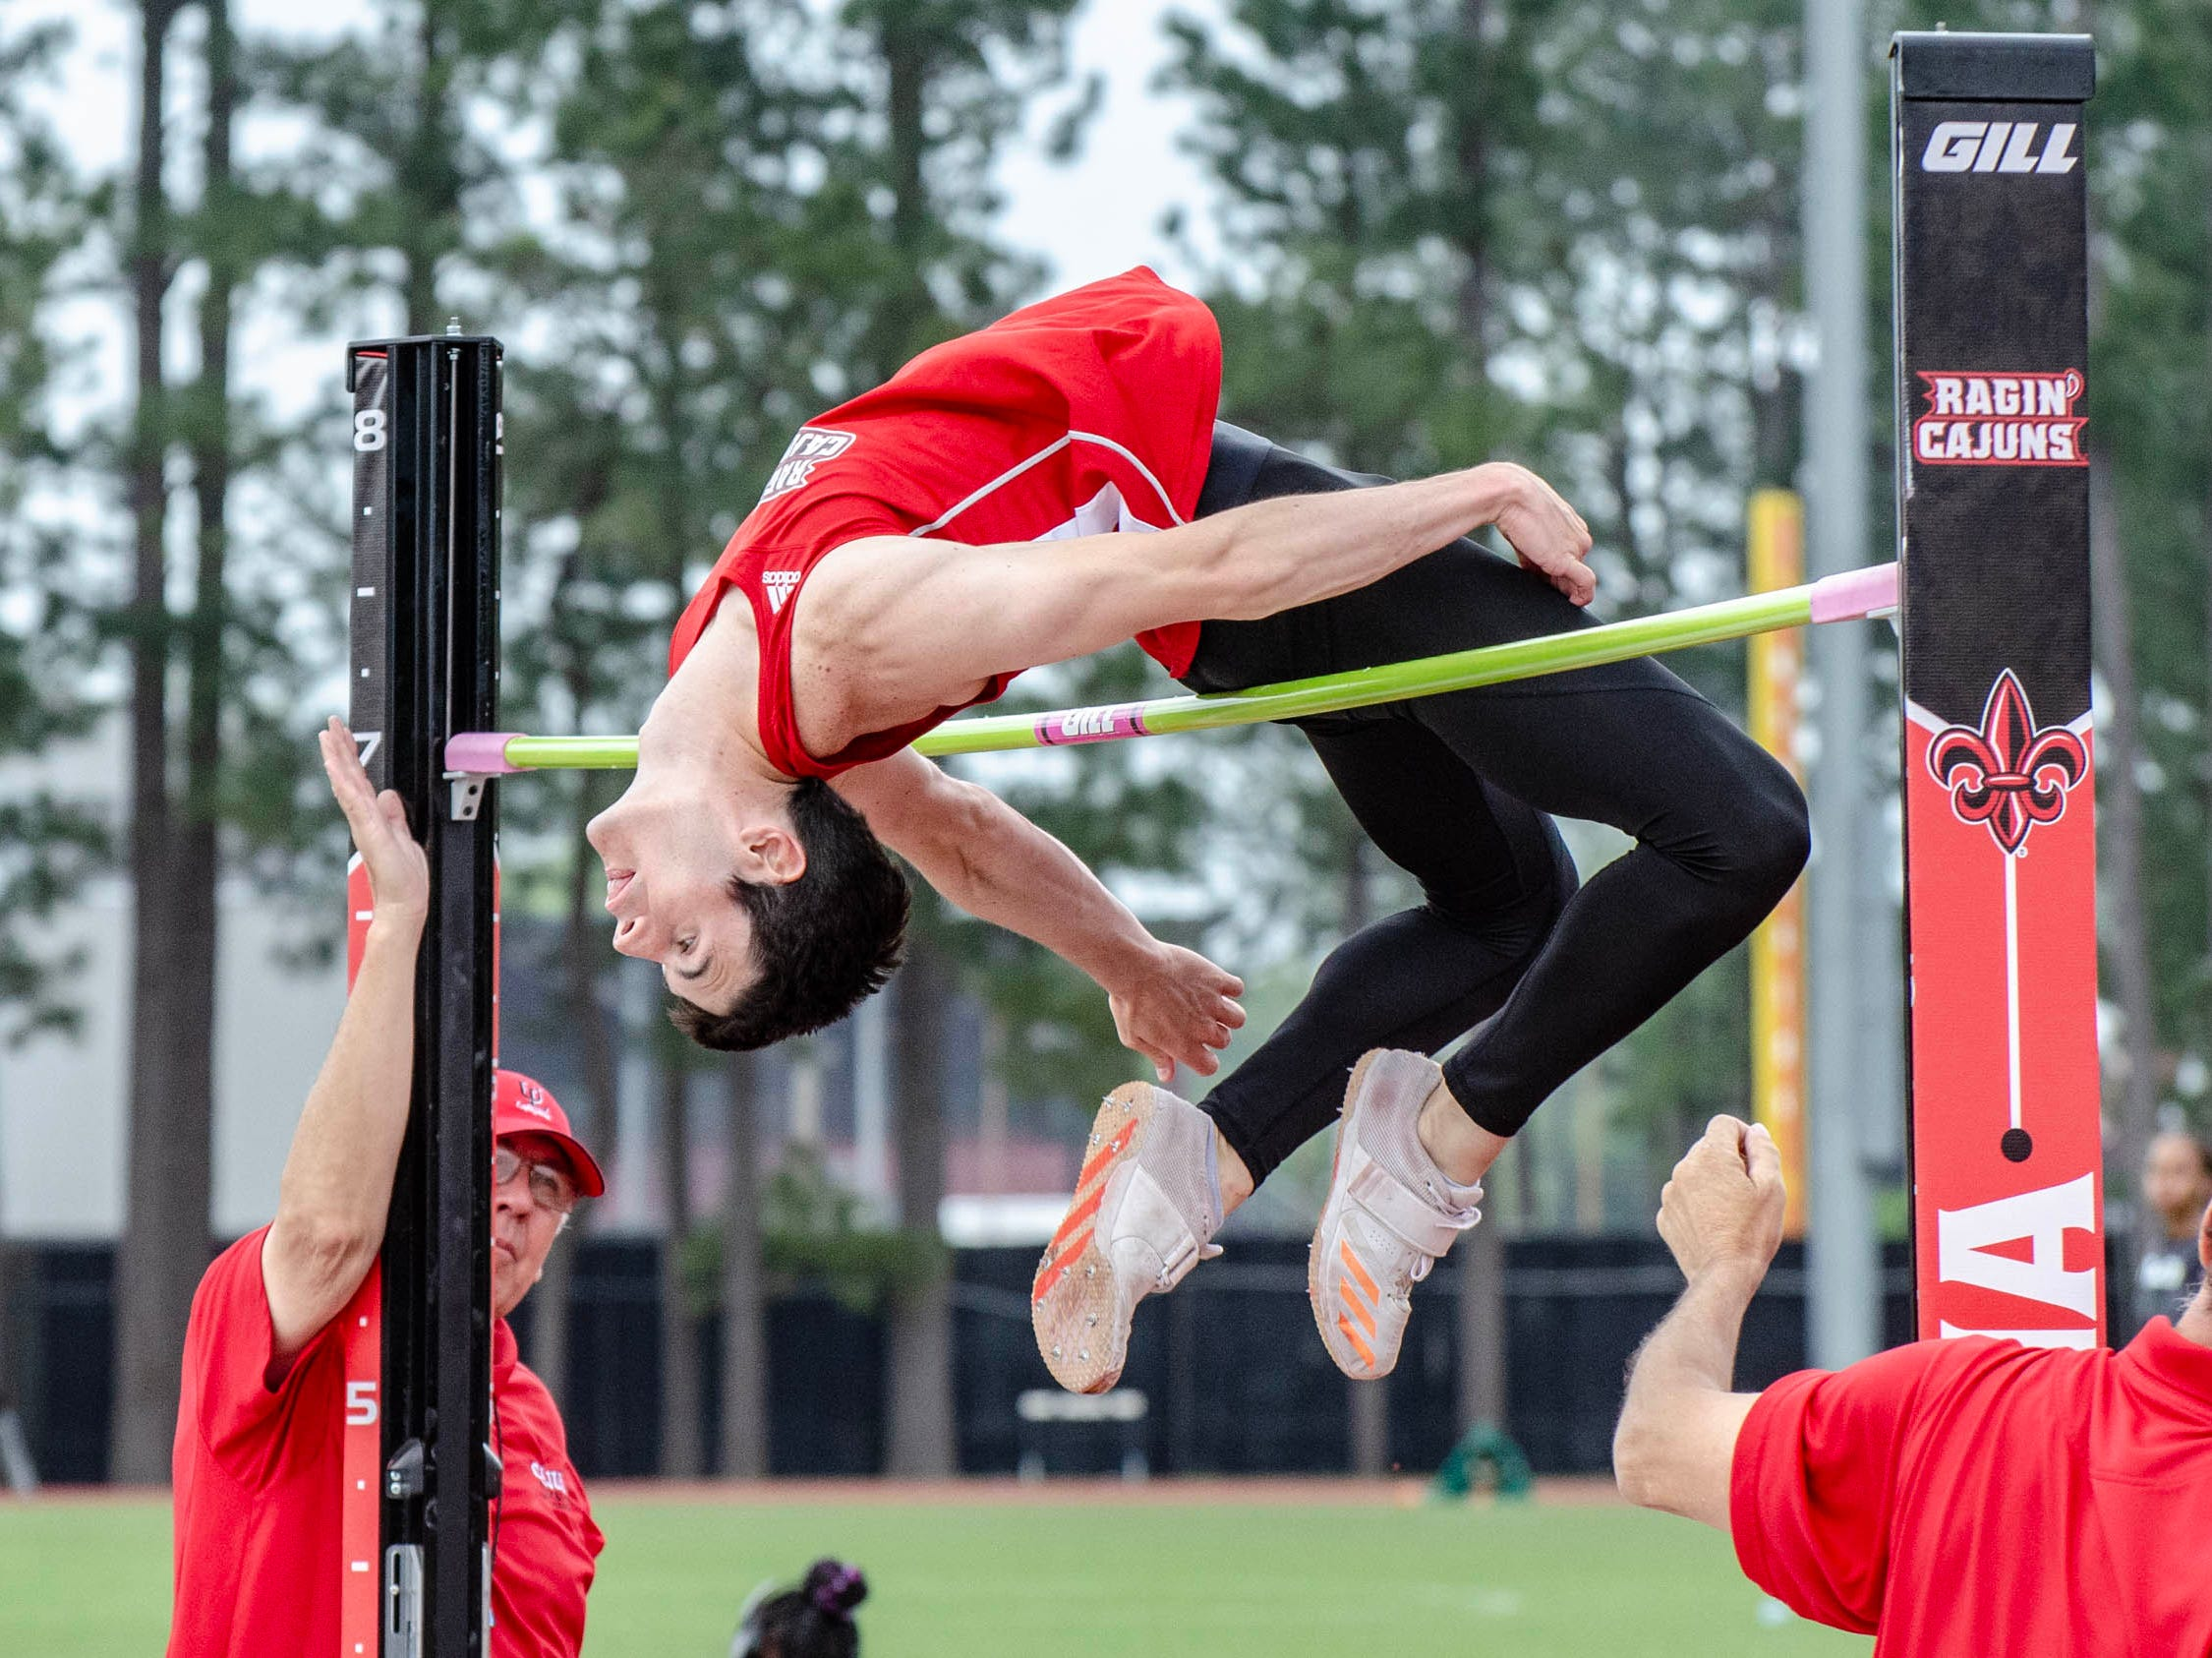 Damon Guidry competing in high jump. University of Louisiana at Lafayette host 2019 Cole-Lancon Conference Showdown.